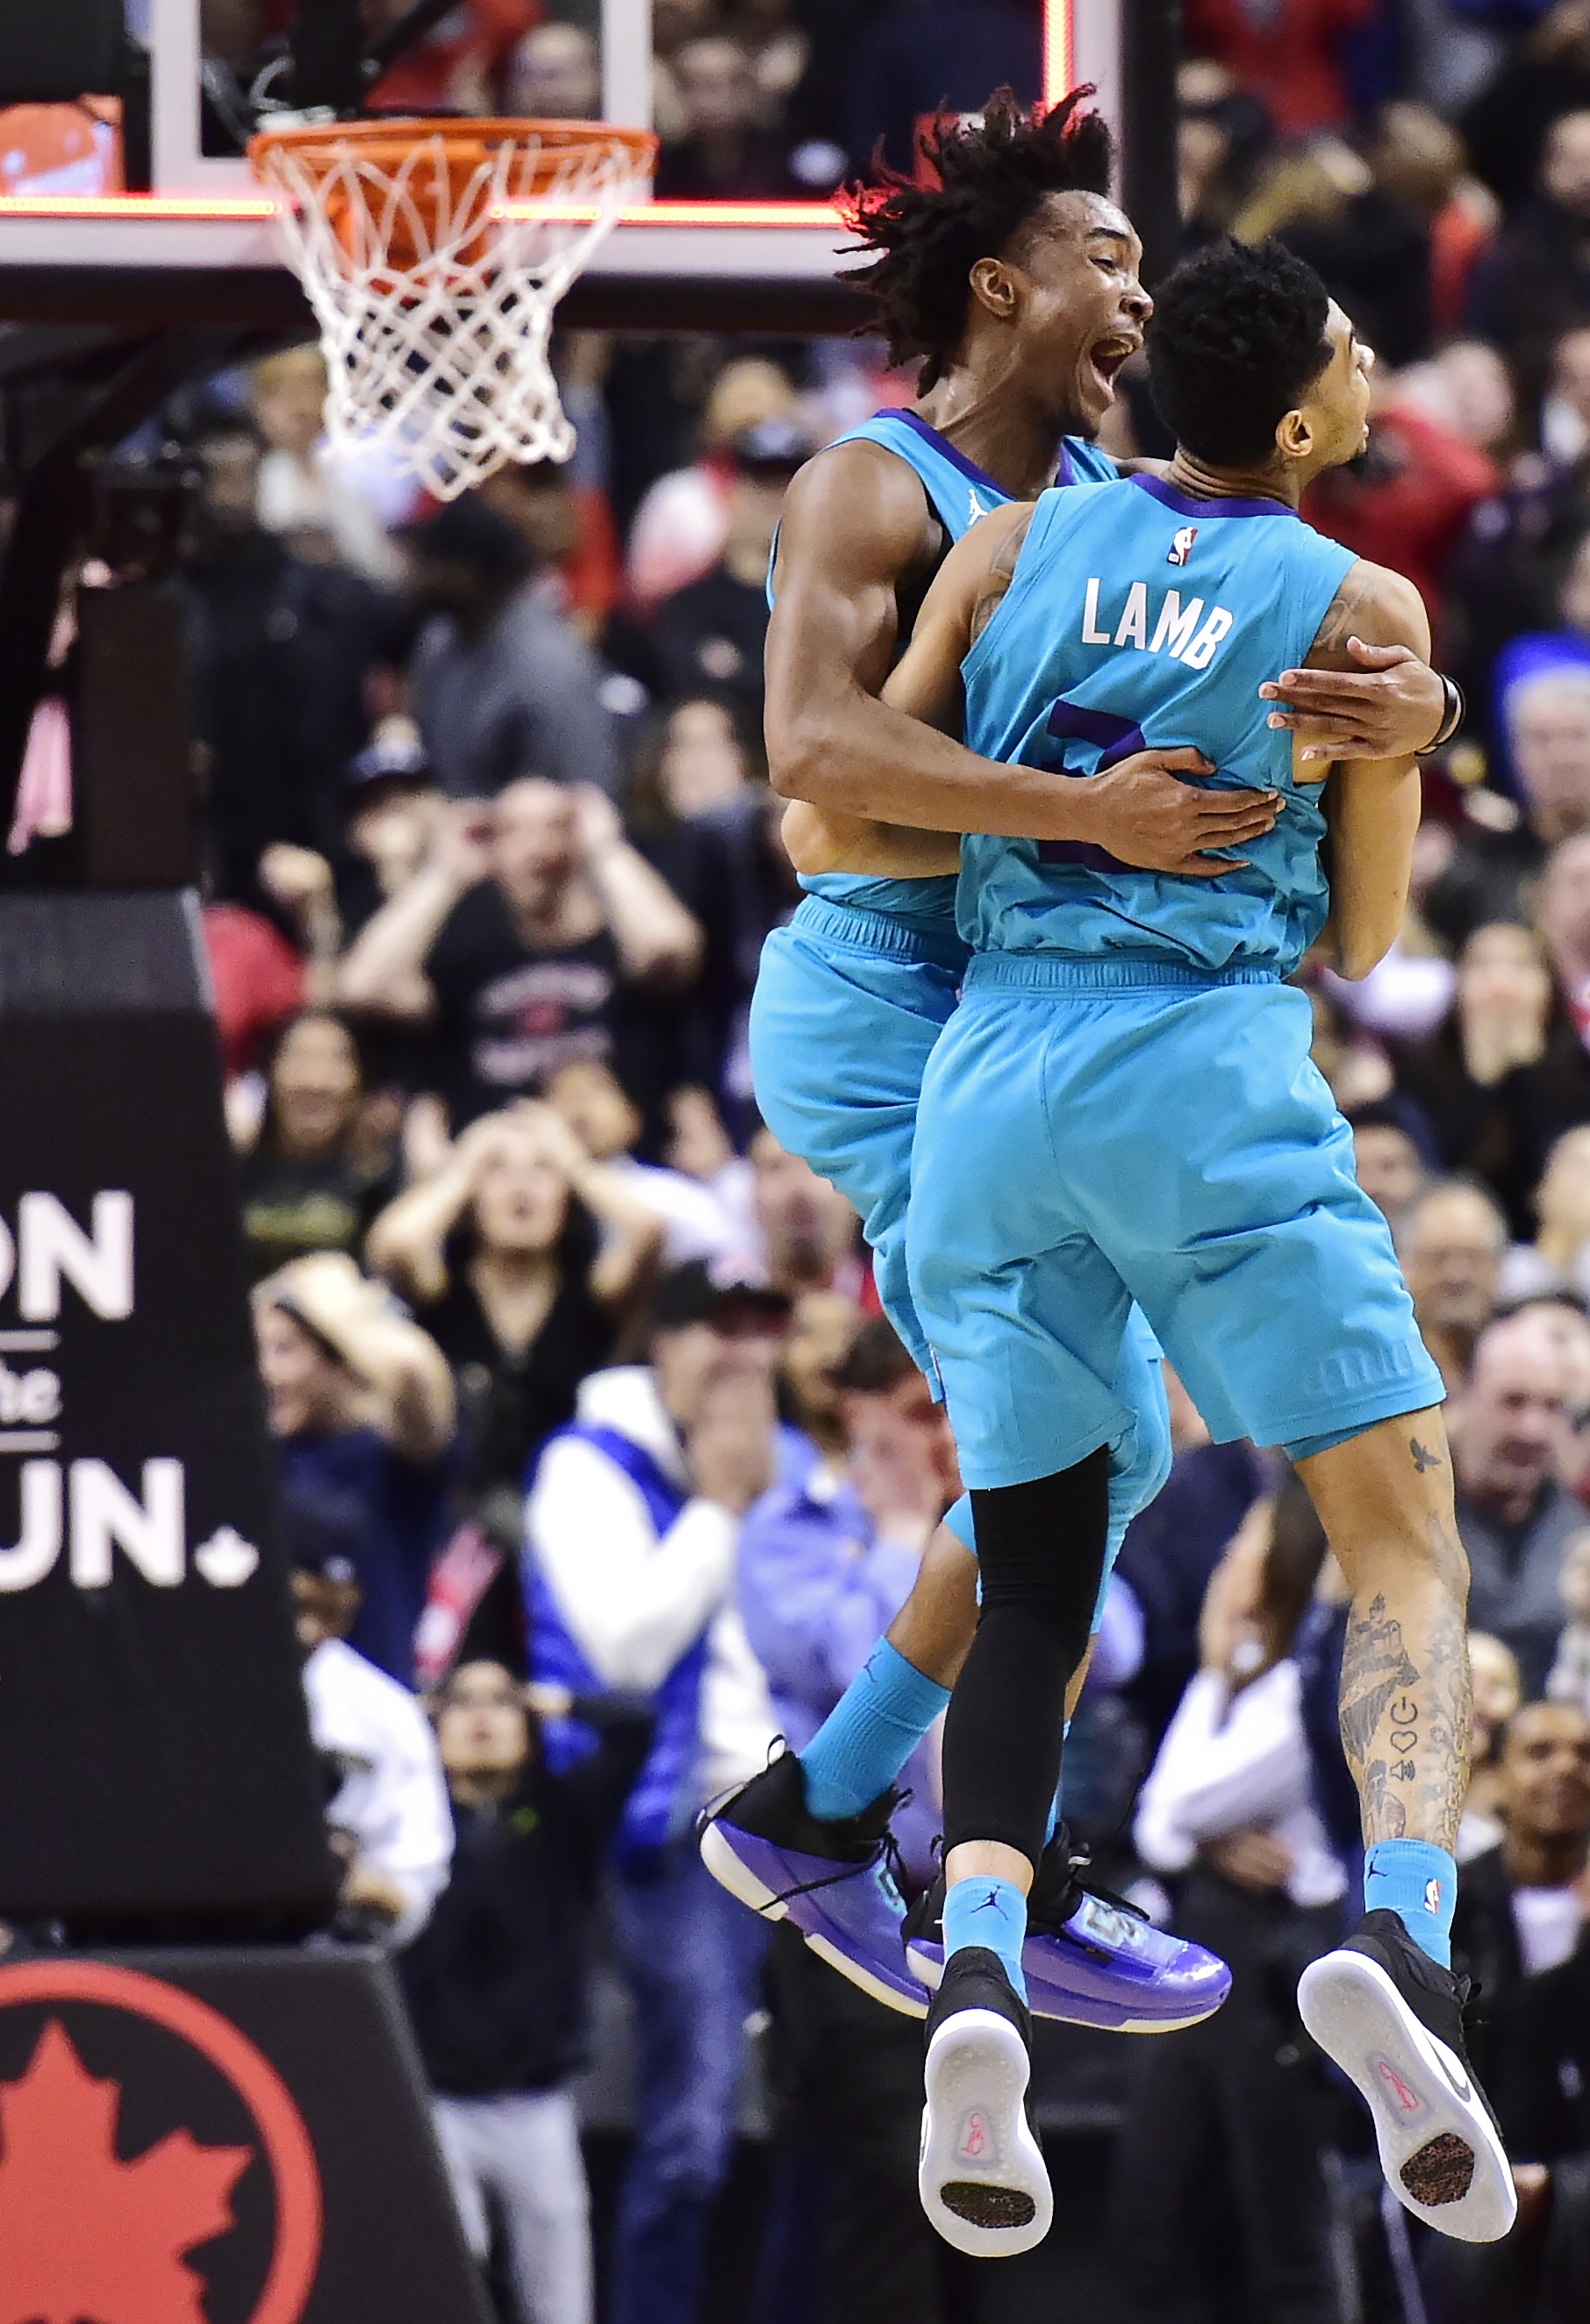 Charlotte Hornets guard Jeremy Lamb (3) celebrates his game-winning basket against the Toronto Raptors with teammate Devonte' Graham, left, in an NBA basketball game Sunday, March 24, 2019, in Toronto. (Frank Gunn/The Canadian Press via AP)